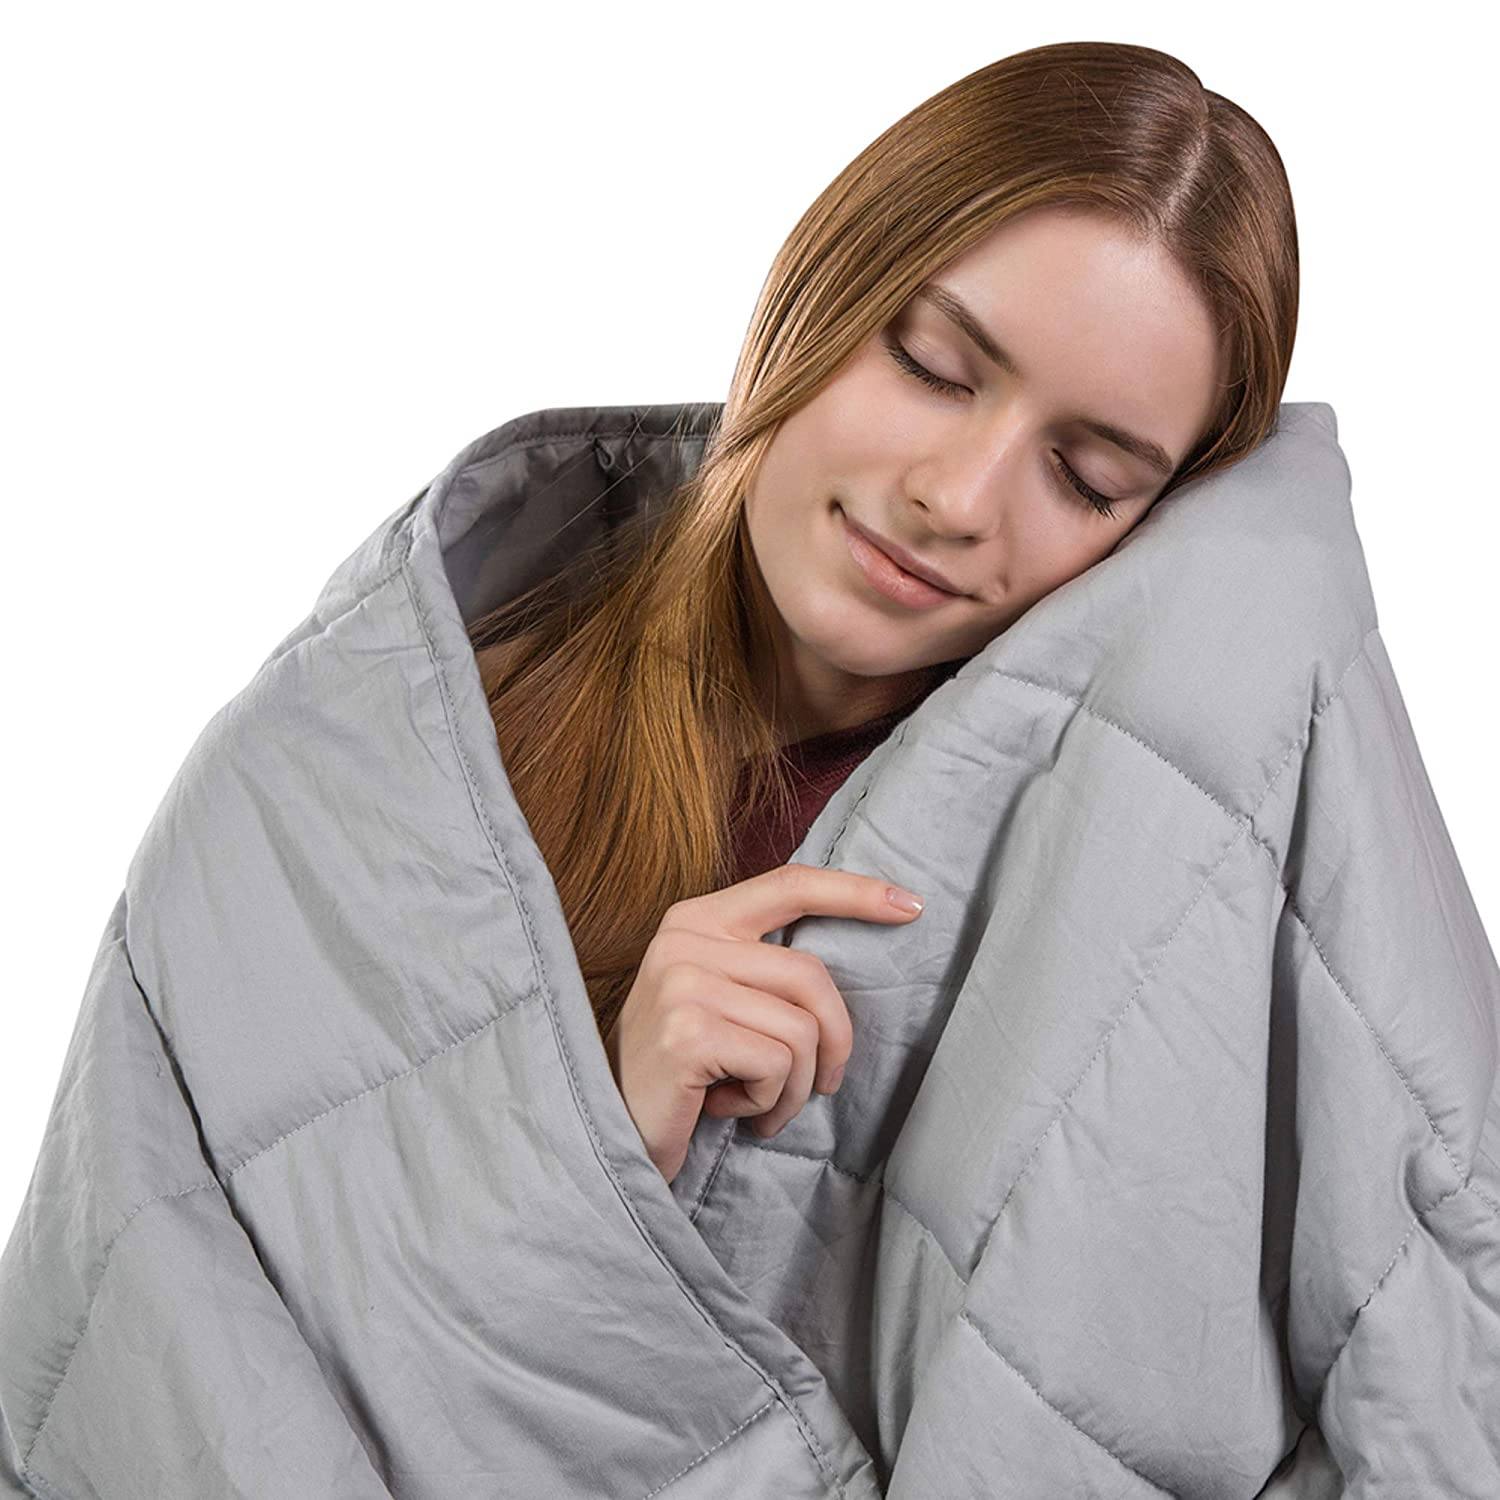 Class Cotton Weighted Blanket for Adult (80X87, 25 lbs, King Size, Light Grey) Organic Cooling Cotton & Premium Glass Beads – Designed in USA - Heavy Cool Weighted Blanket for Hot & Cold Sleepers